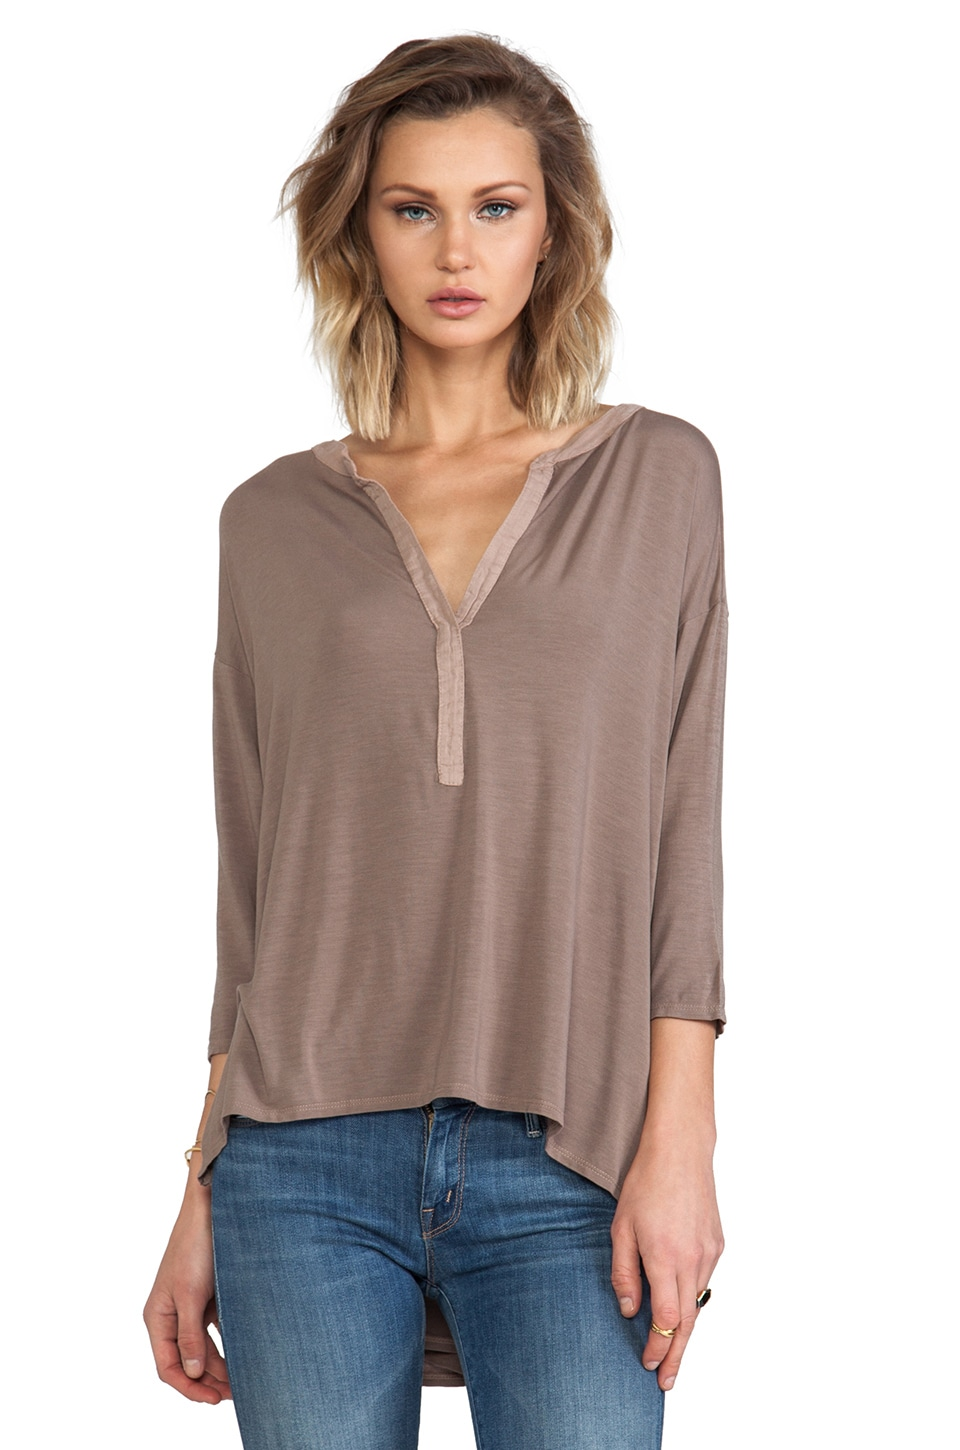 Michael Stars 3/4 High Low Split Neck Tee in Cobblestone